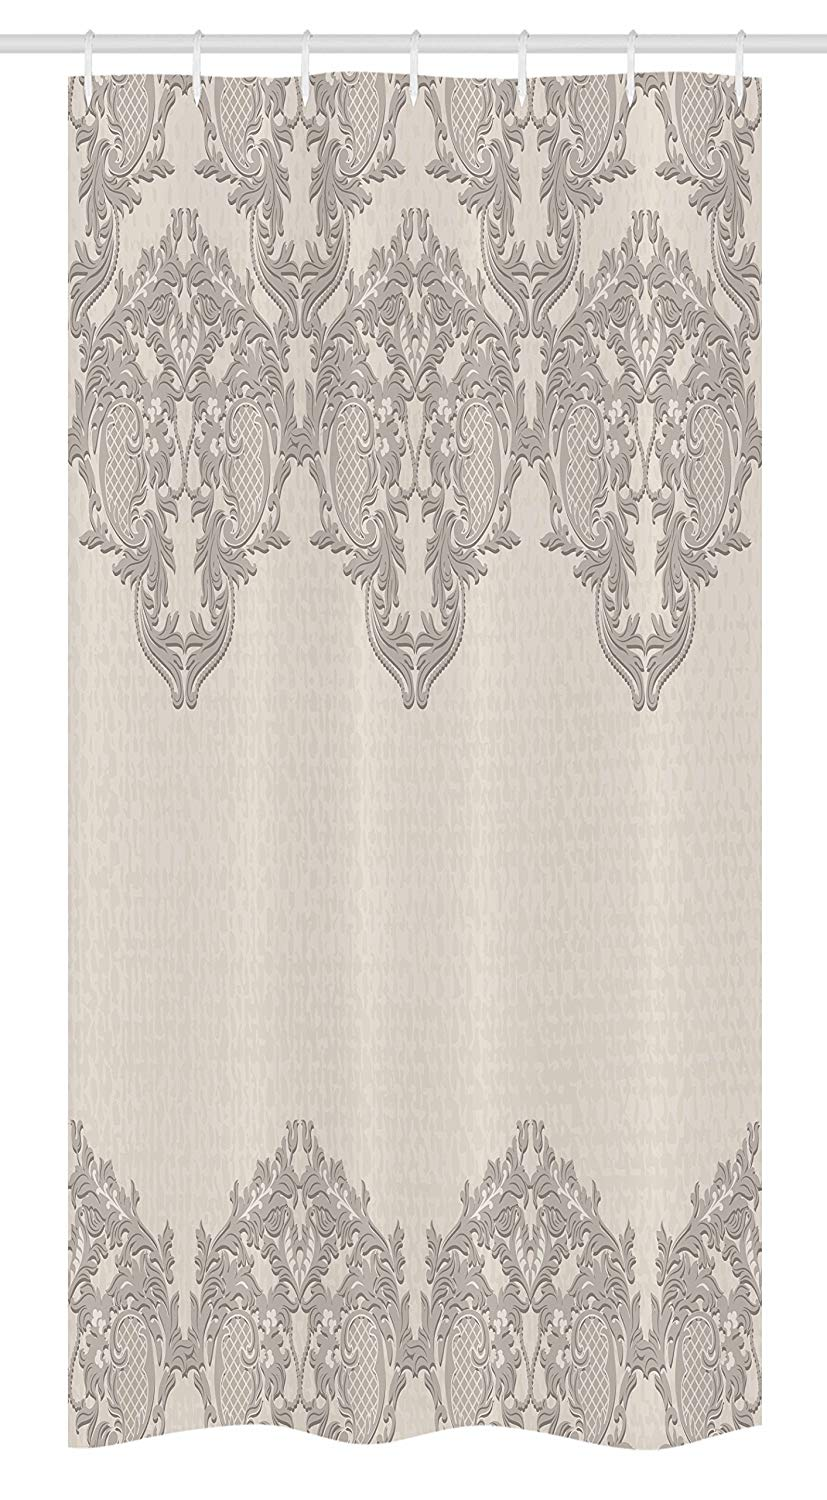 Ambesonne Taupe Stall Shower Curtain, Lace Like Framework Borders with Arabesque Details Delicate Intricate Retro Dated Print, Fabric Bathroom Decor Set with Hooks, 36 W x 72 L Inches, Taupe